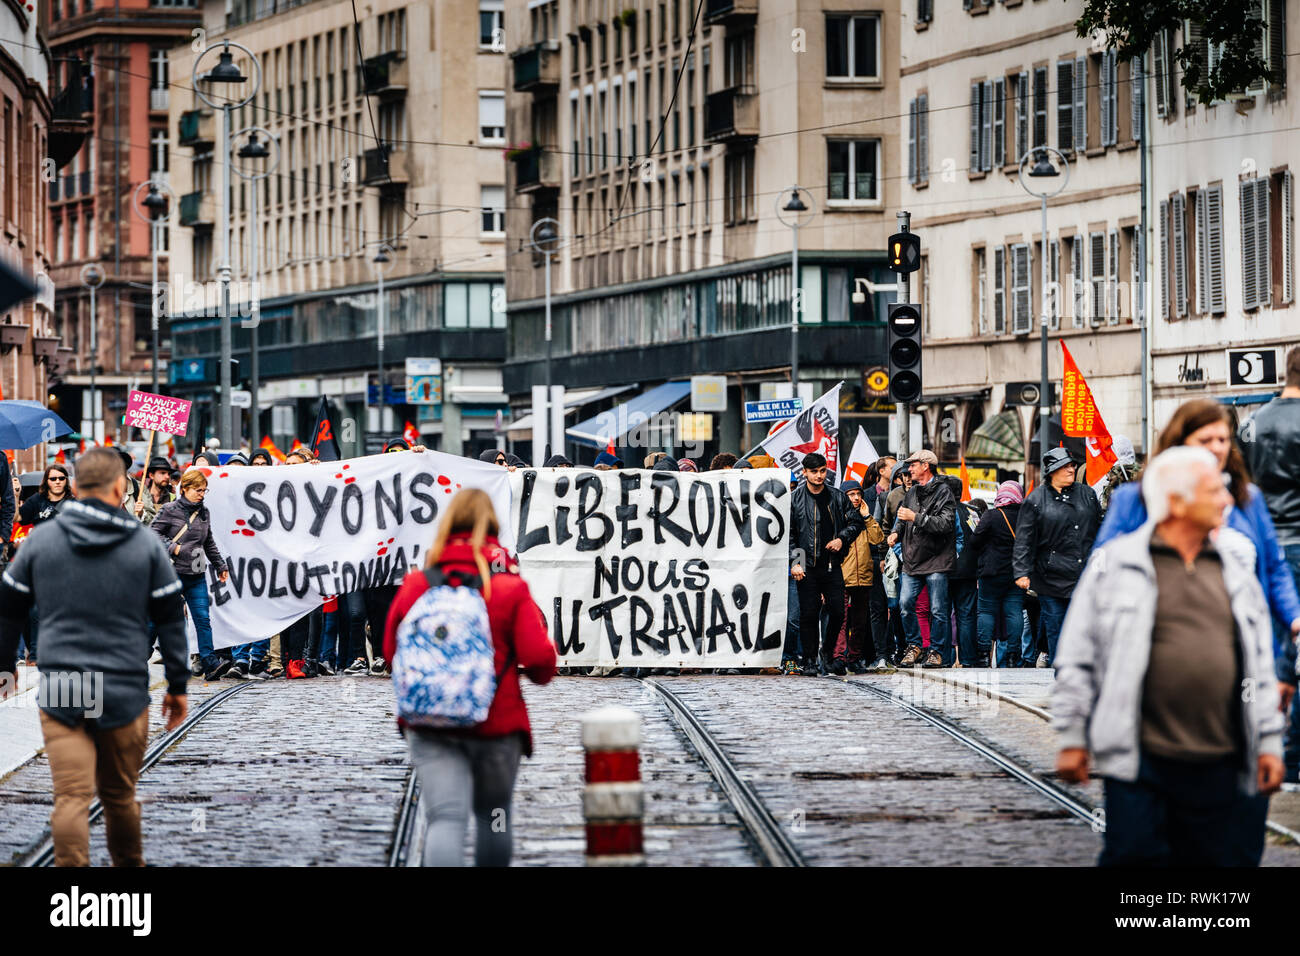 Strasbourg, France - Sep 12, 2017: let's be revolutionary message on placard at political march during a French Nationwide day of protest against the labor reforms - Stock Image